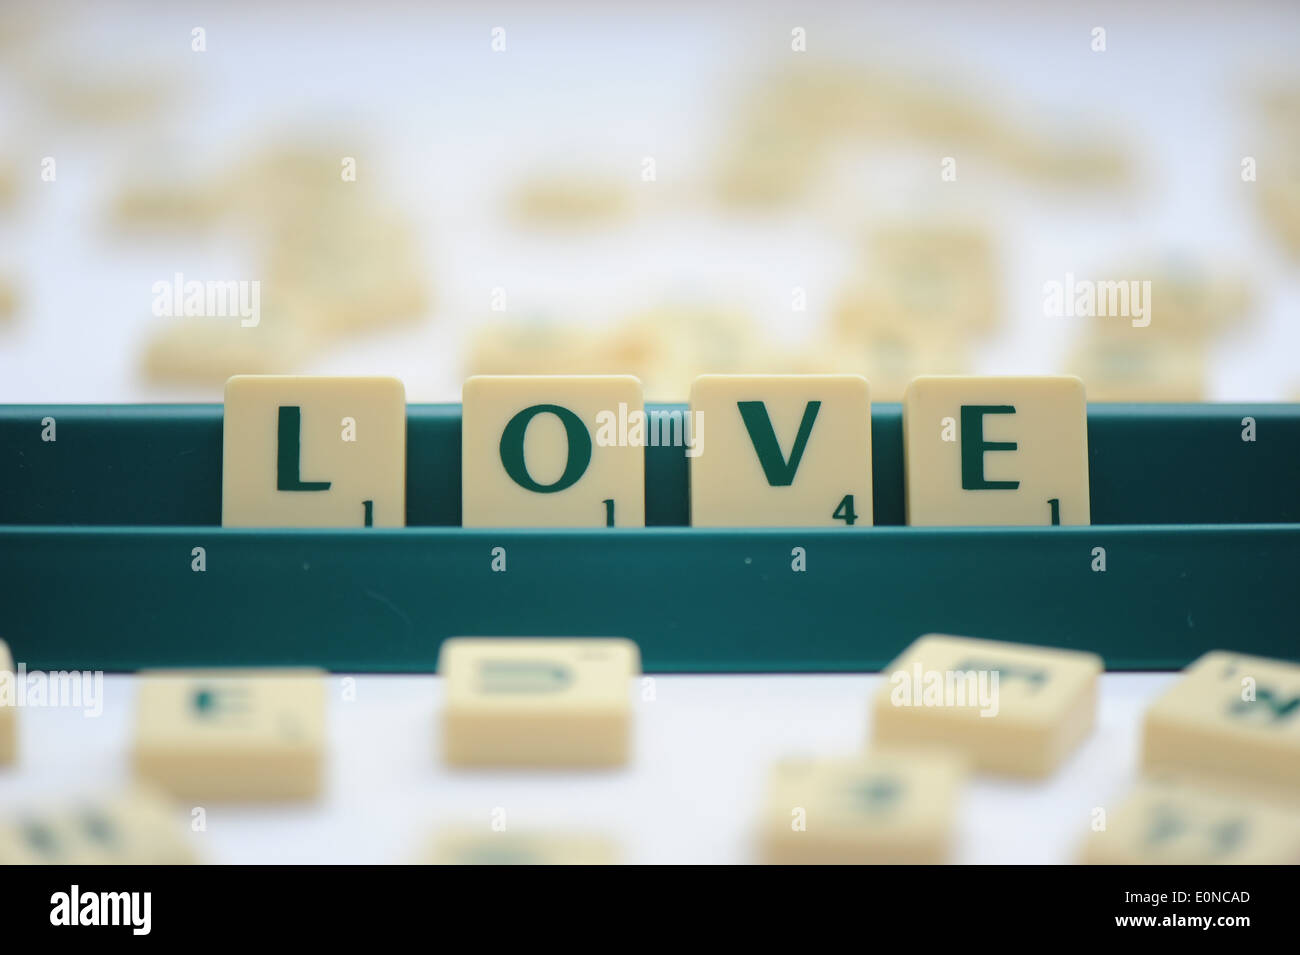 Scrabble tiles reading out the words love - Stock Image